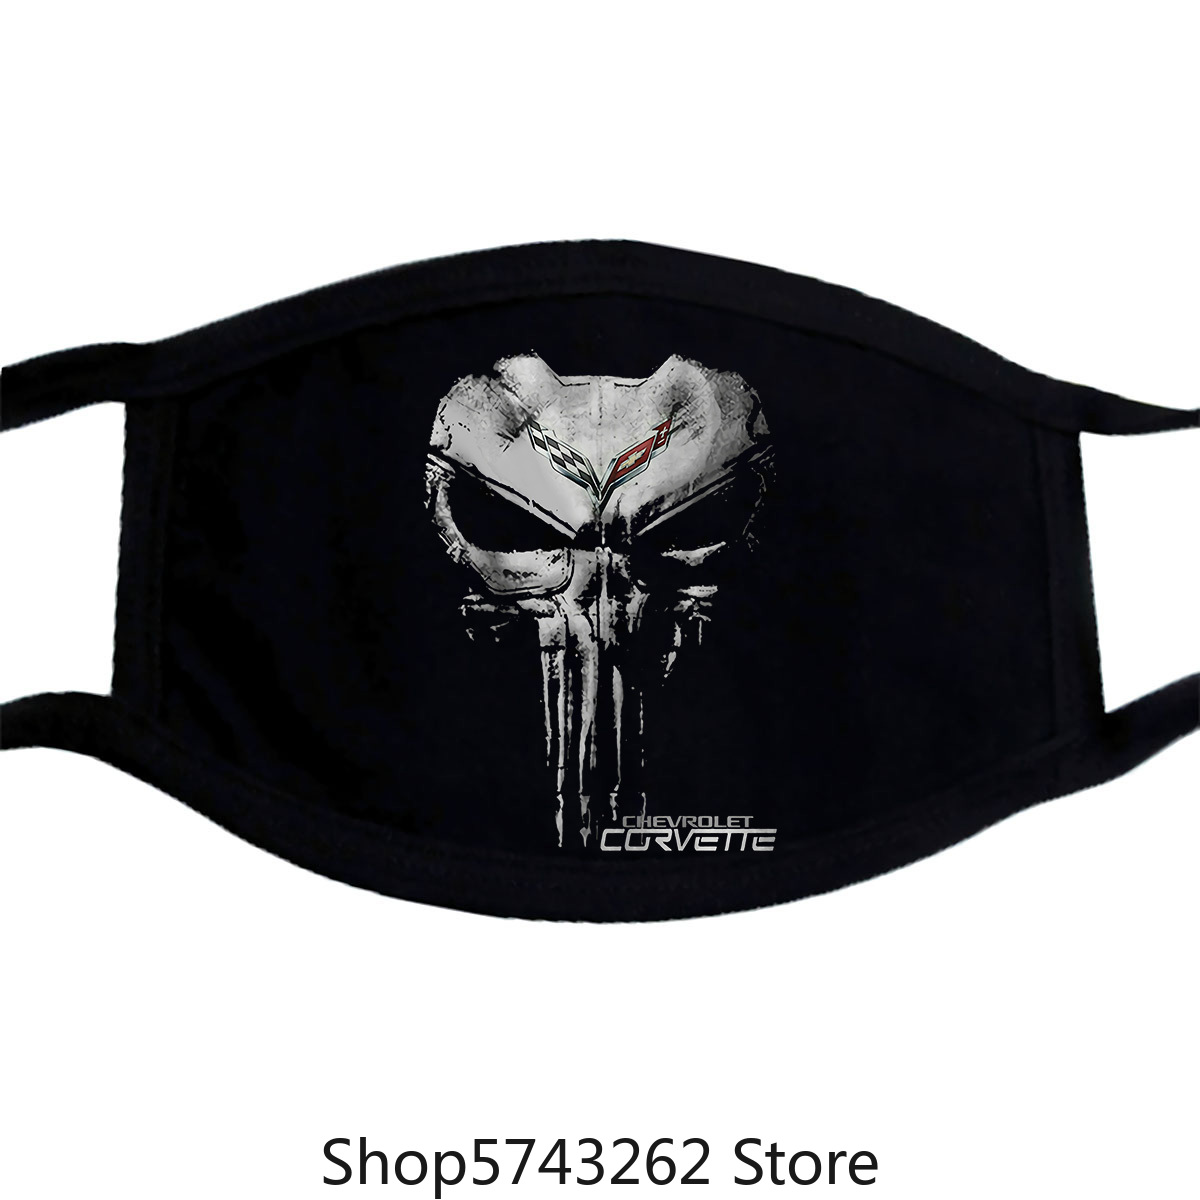 Corvette C7 C6 C5 C4 C3 C2 C1 Z06 Zr1 Men Mask Black Cotton Full Size Washable Reusable Mask With